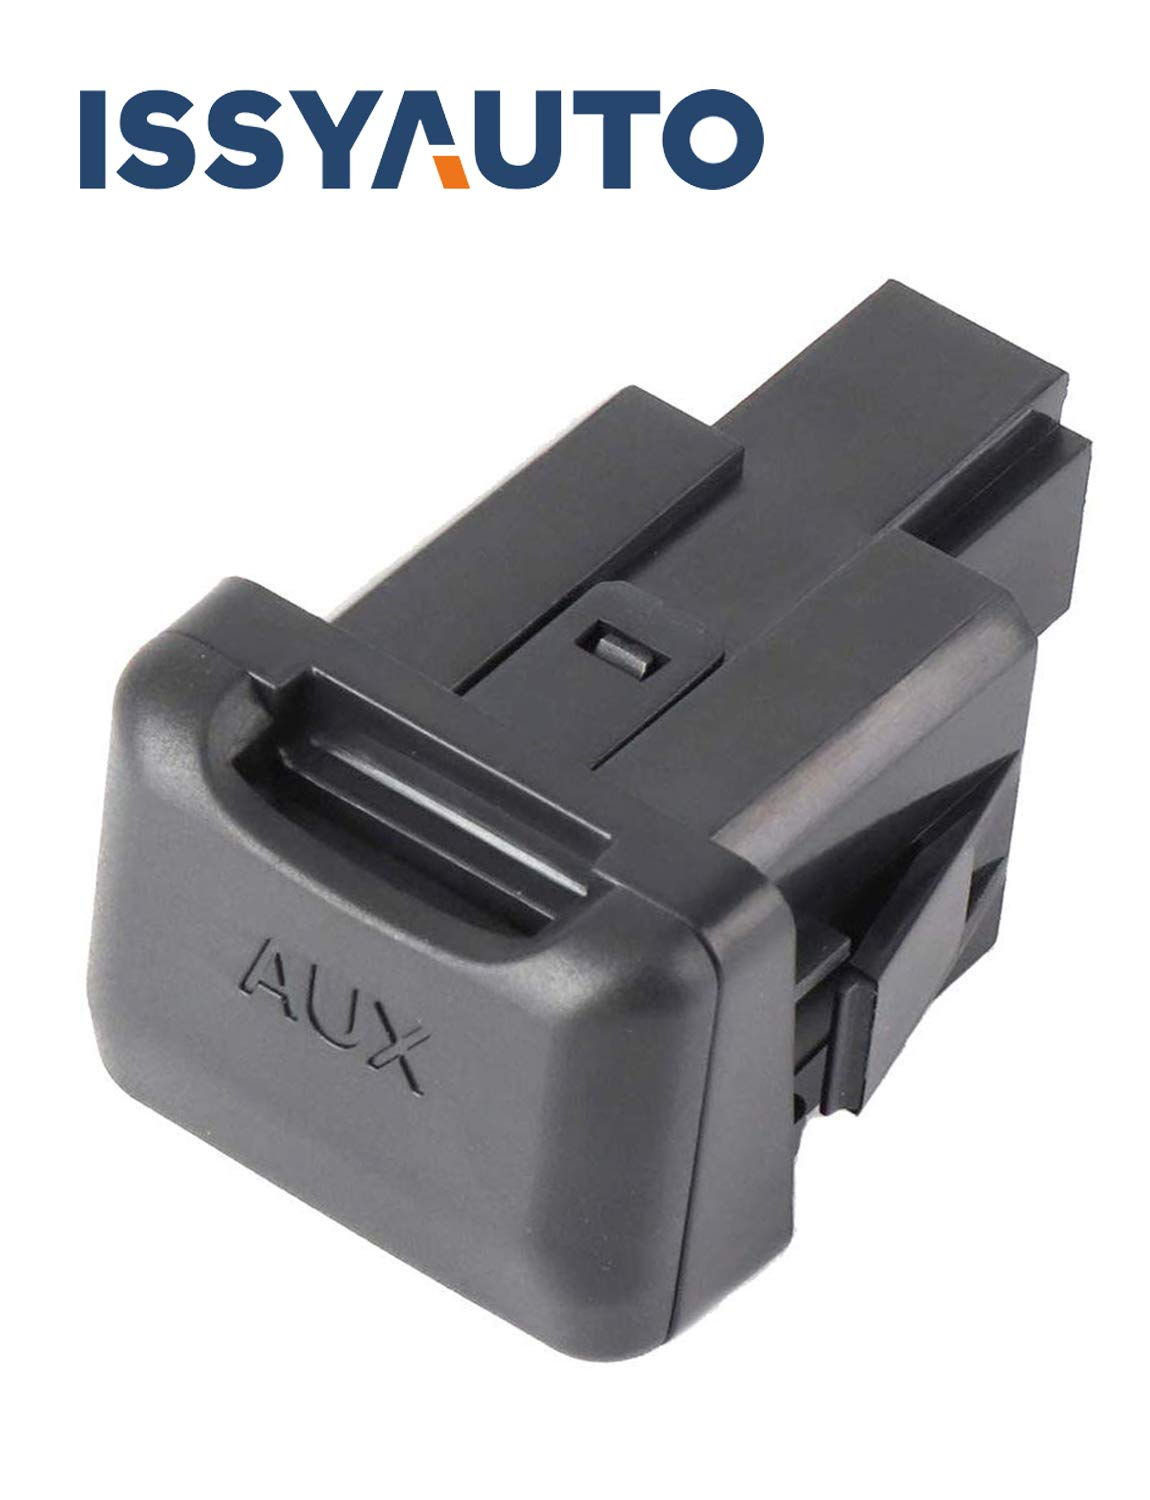 Aux Port Replacement for Honda Civic CRV Auxiliary Input Jack Stereo Adaptor 39112-SNA-A01 by ISSYAUTO